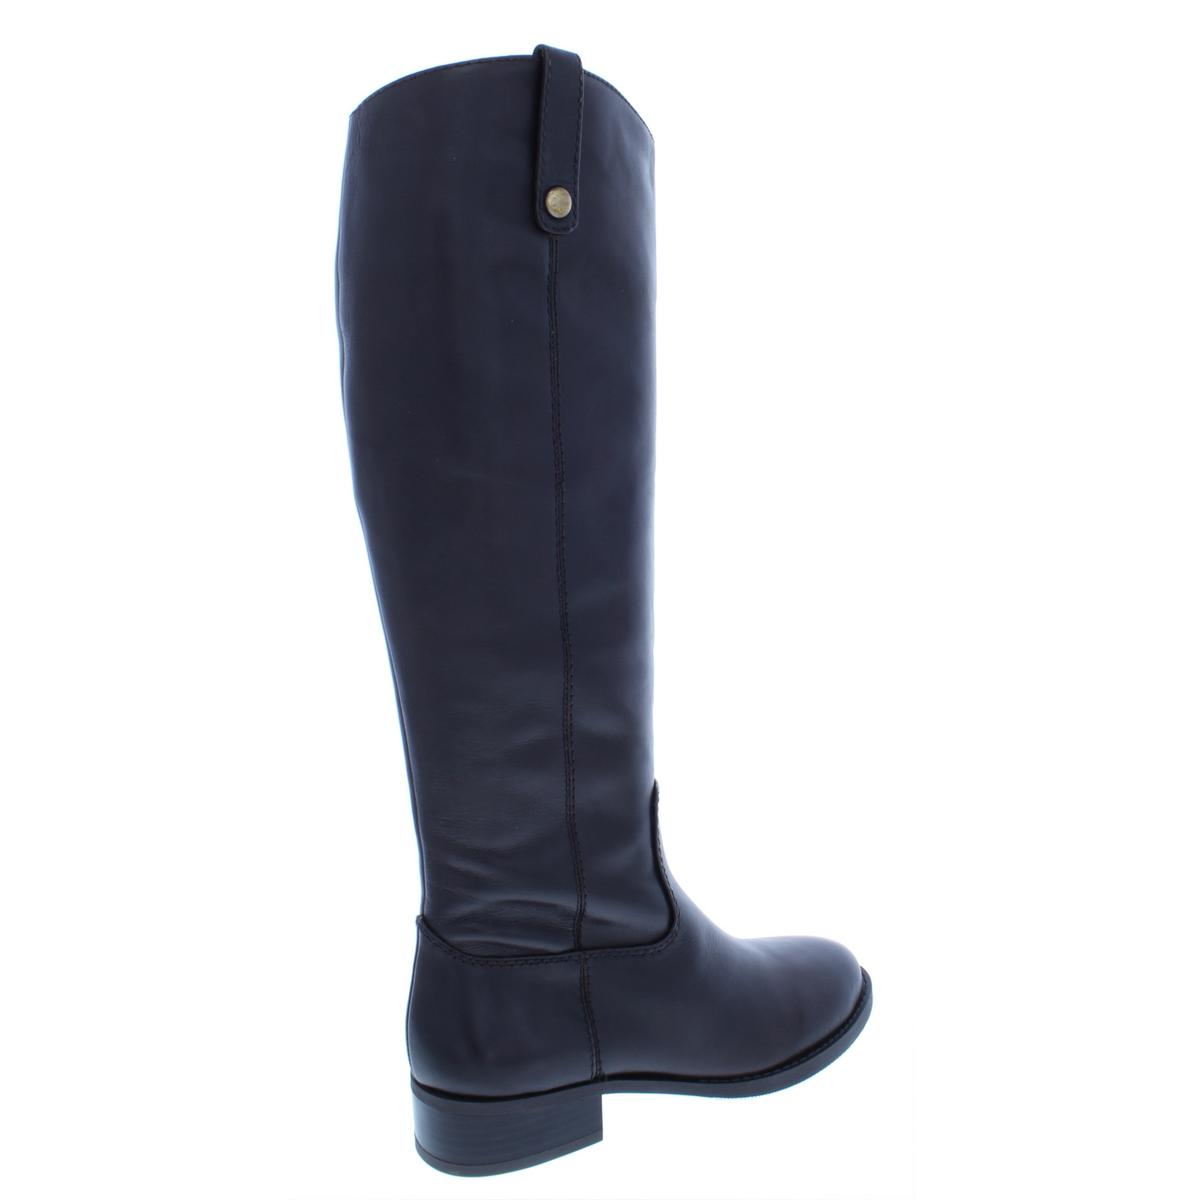 INC Womens Fawne Leather Knee-High Tall Riding Boots Shoes BHFO 5020